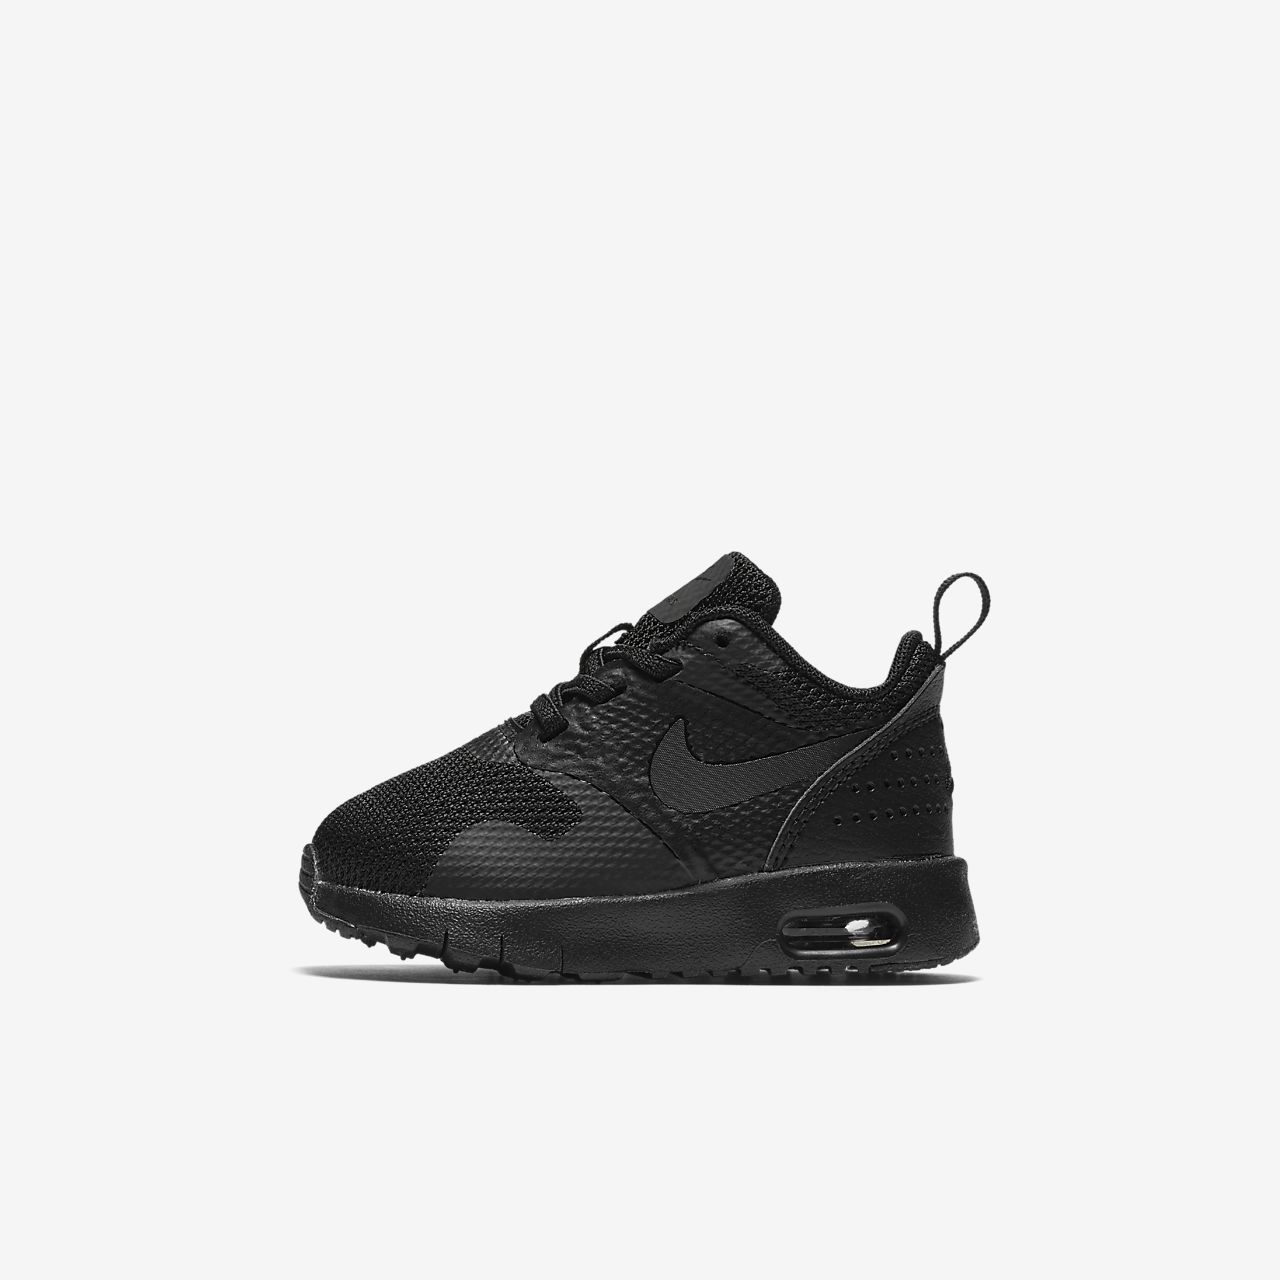 ... Nike Air Max Tavas Schoen baby's/peuters